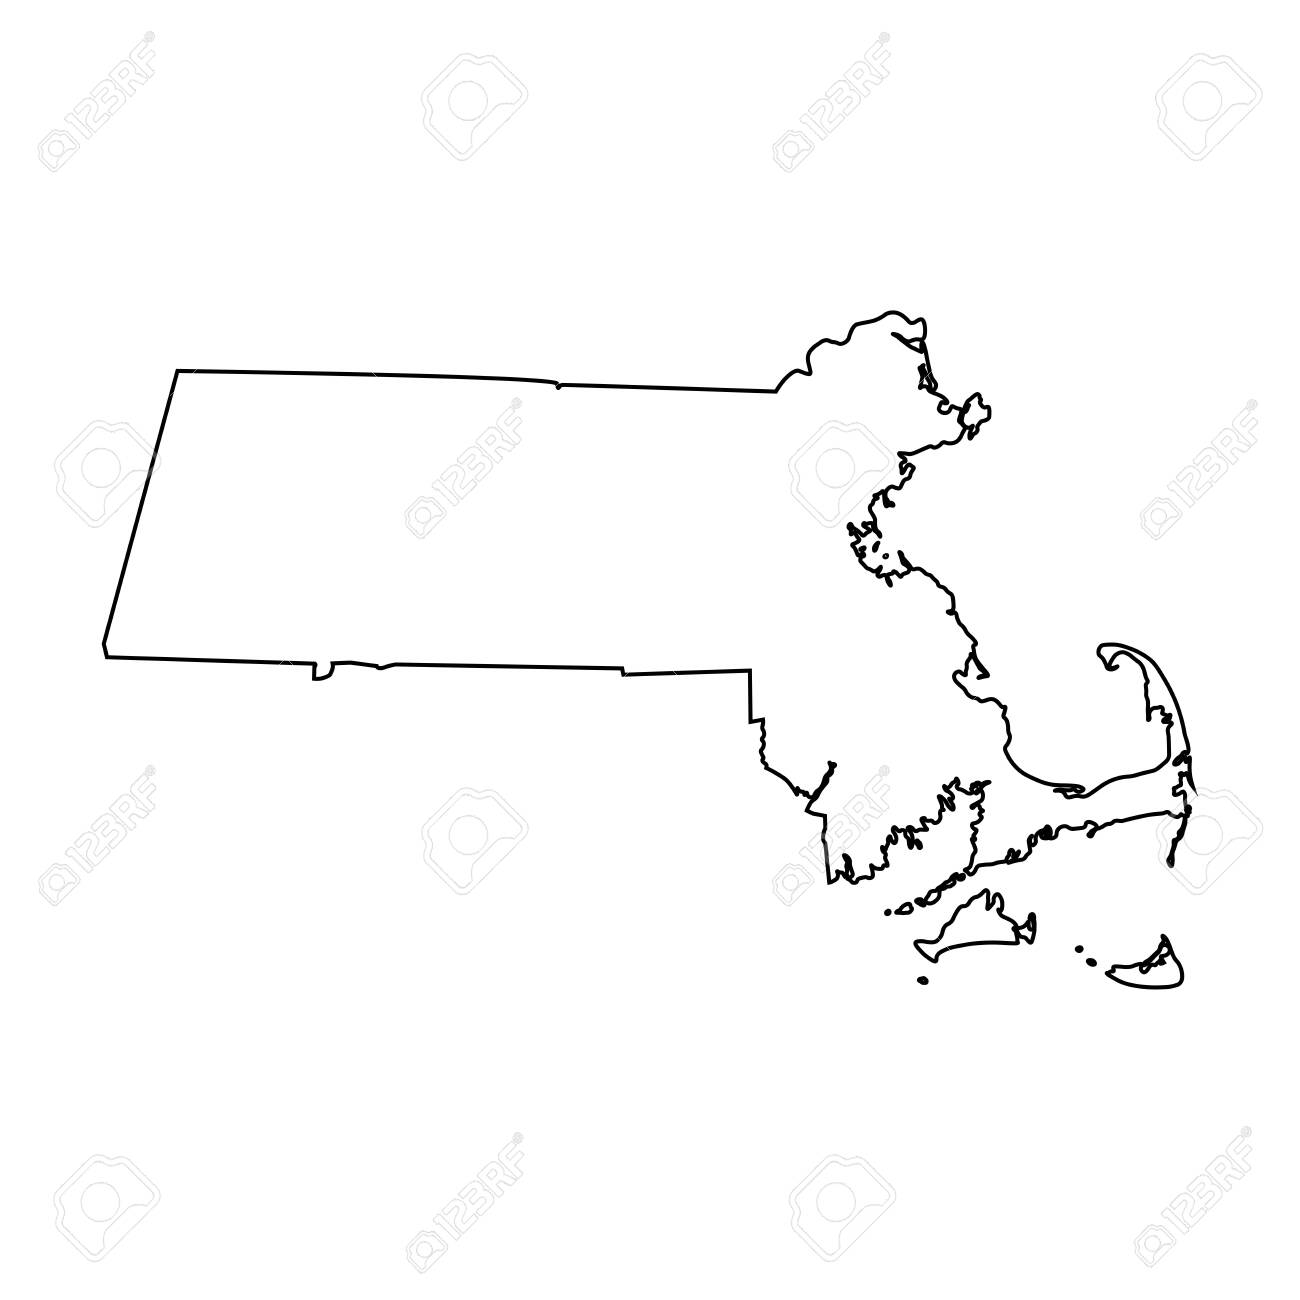 Massachusetts MA state Maps. Black outline map isolated on a white background. EPS Vector - 149990998